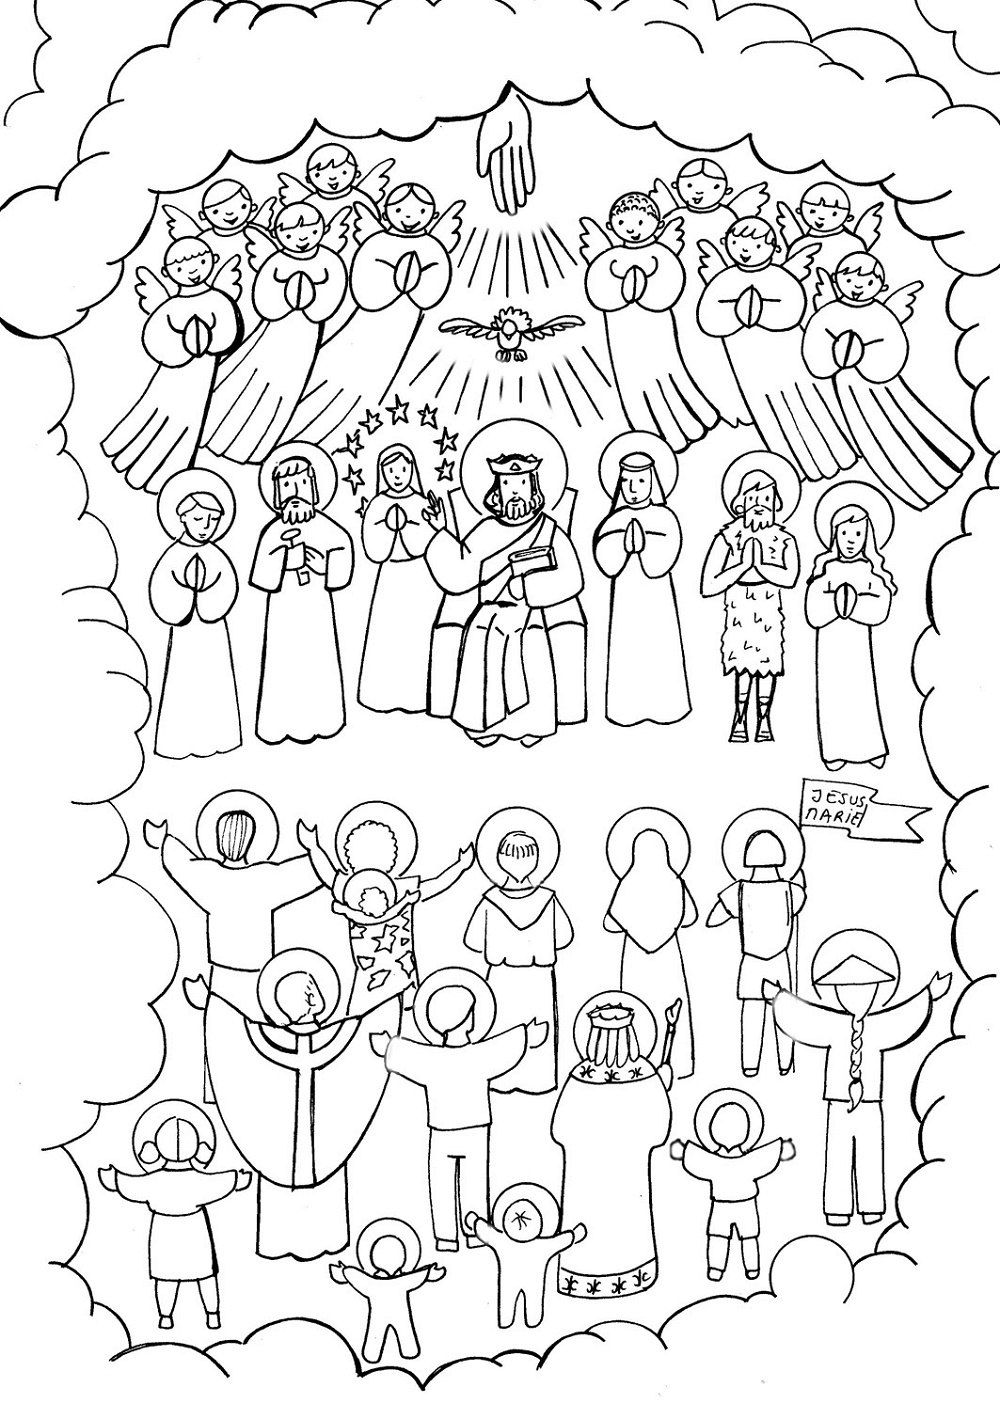 All Saints Day Coloring Pages K5 Worksheets Saint Coloring All Saints Day Sunday School Coloring Pages